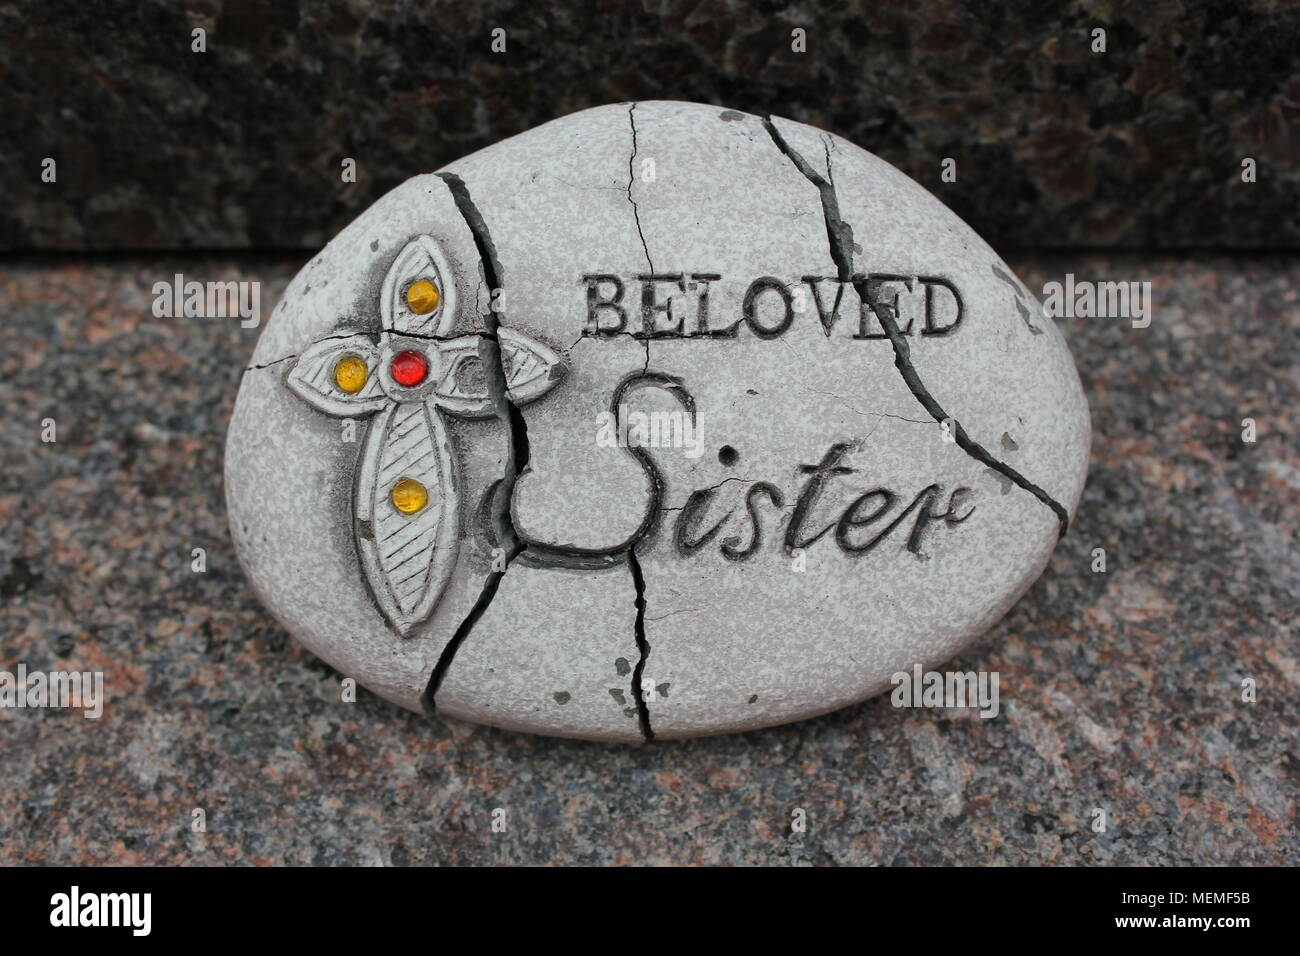 Memorial rock that states 'Beloved Sister' next to a decorated cross. - Stock Image